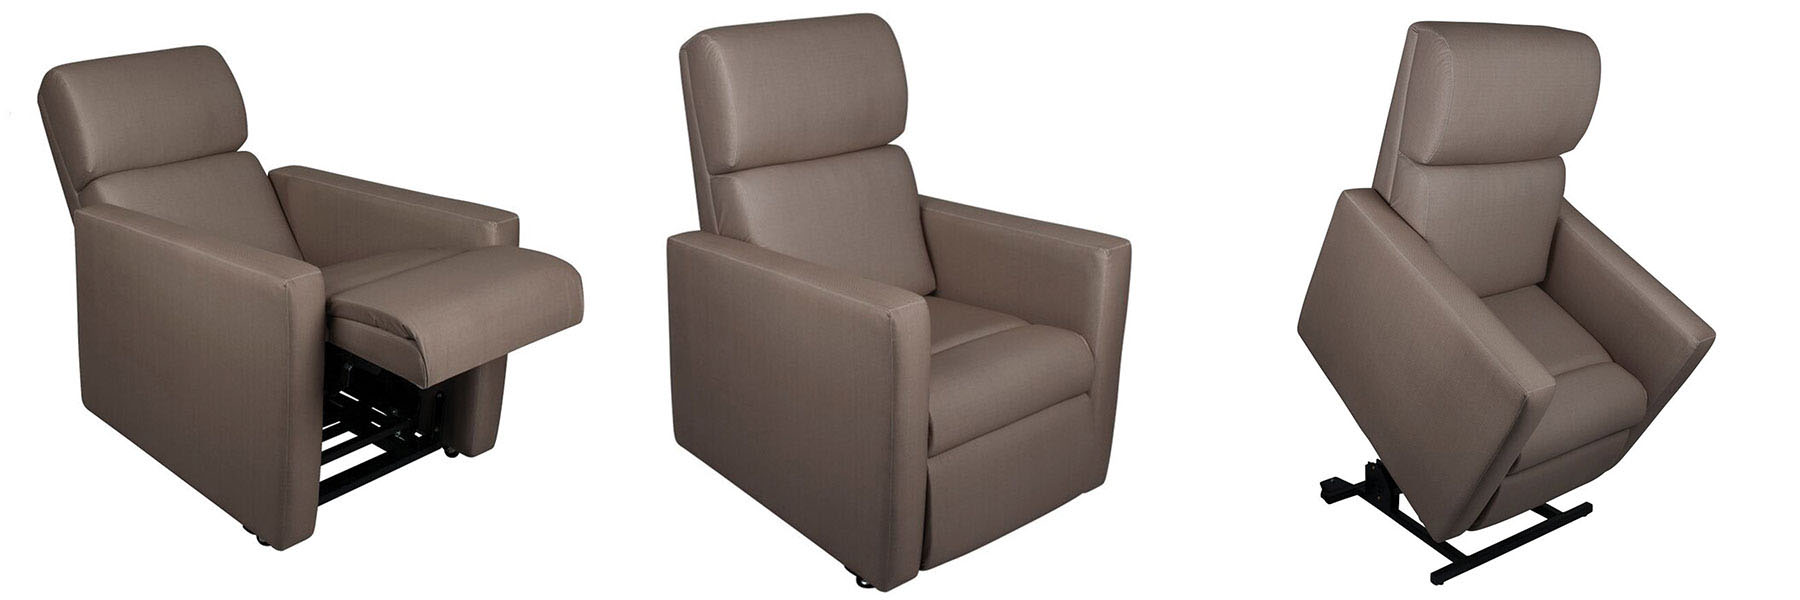 The Noble rise and recline chair